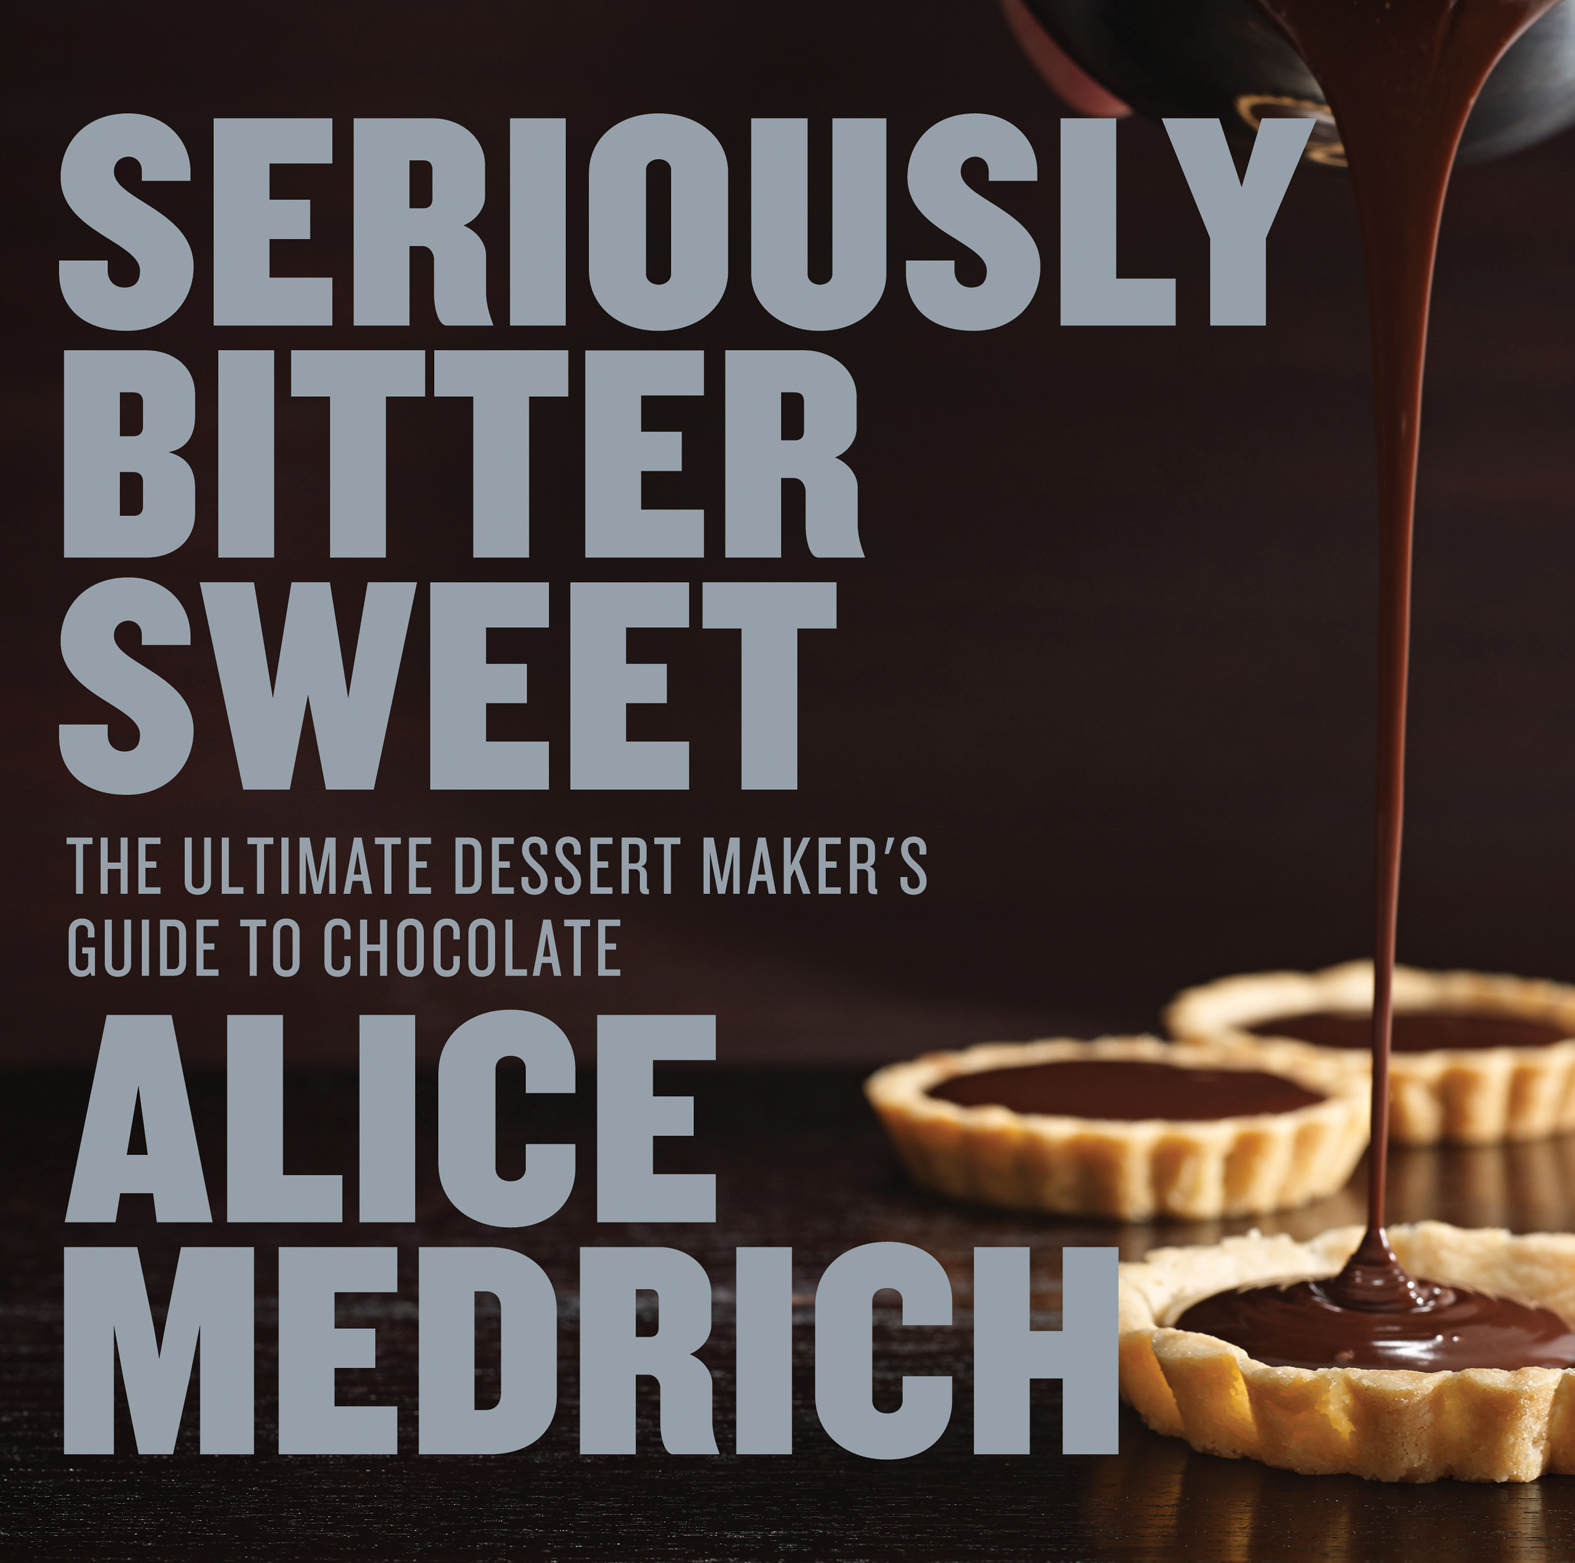 Seriously Bitter Sweet The Ultimate Dessert Maker's Guide to Chocolate